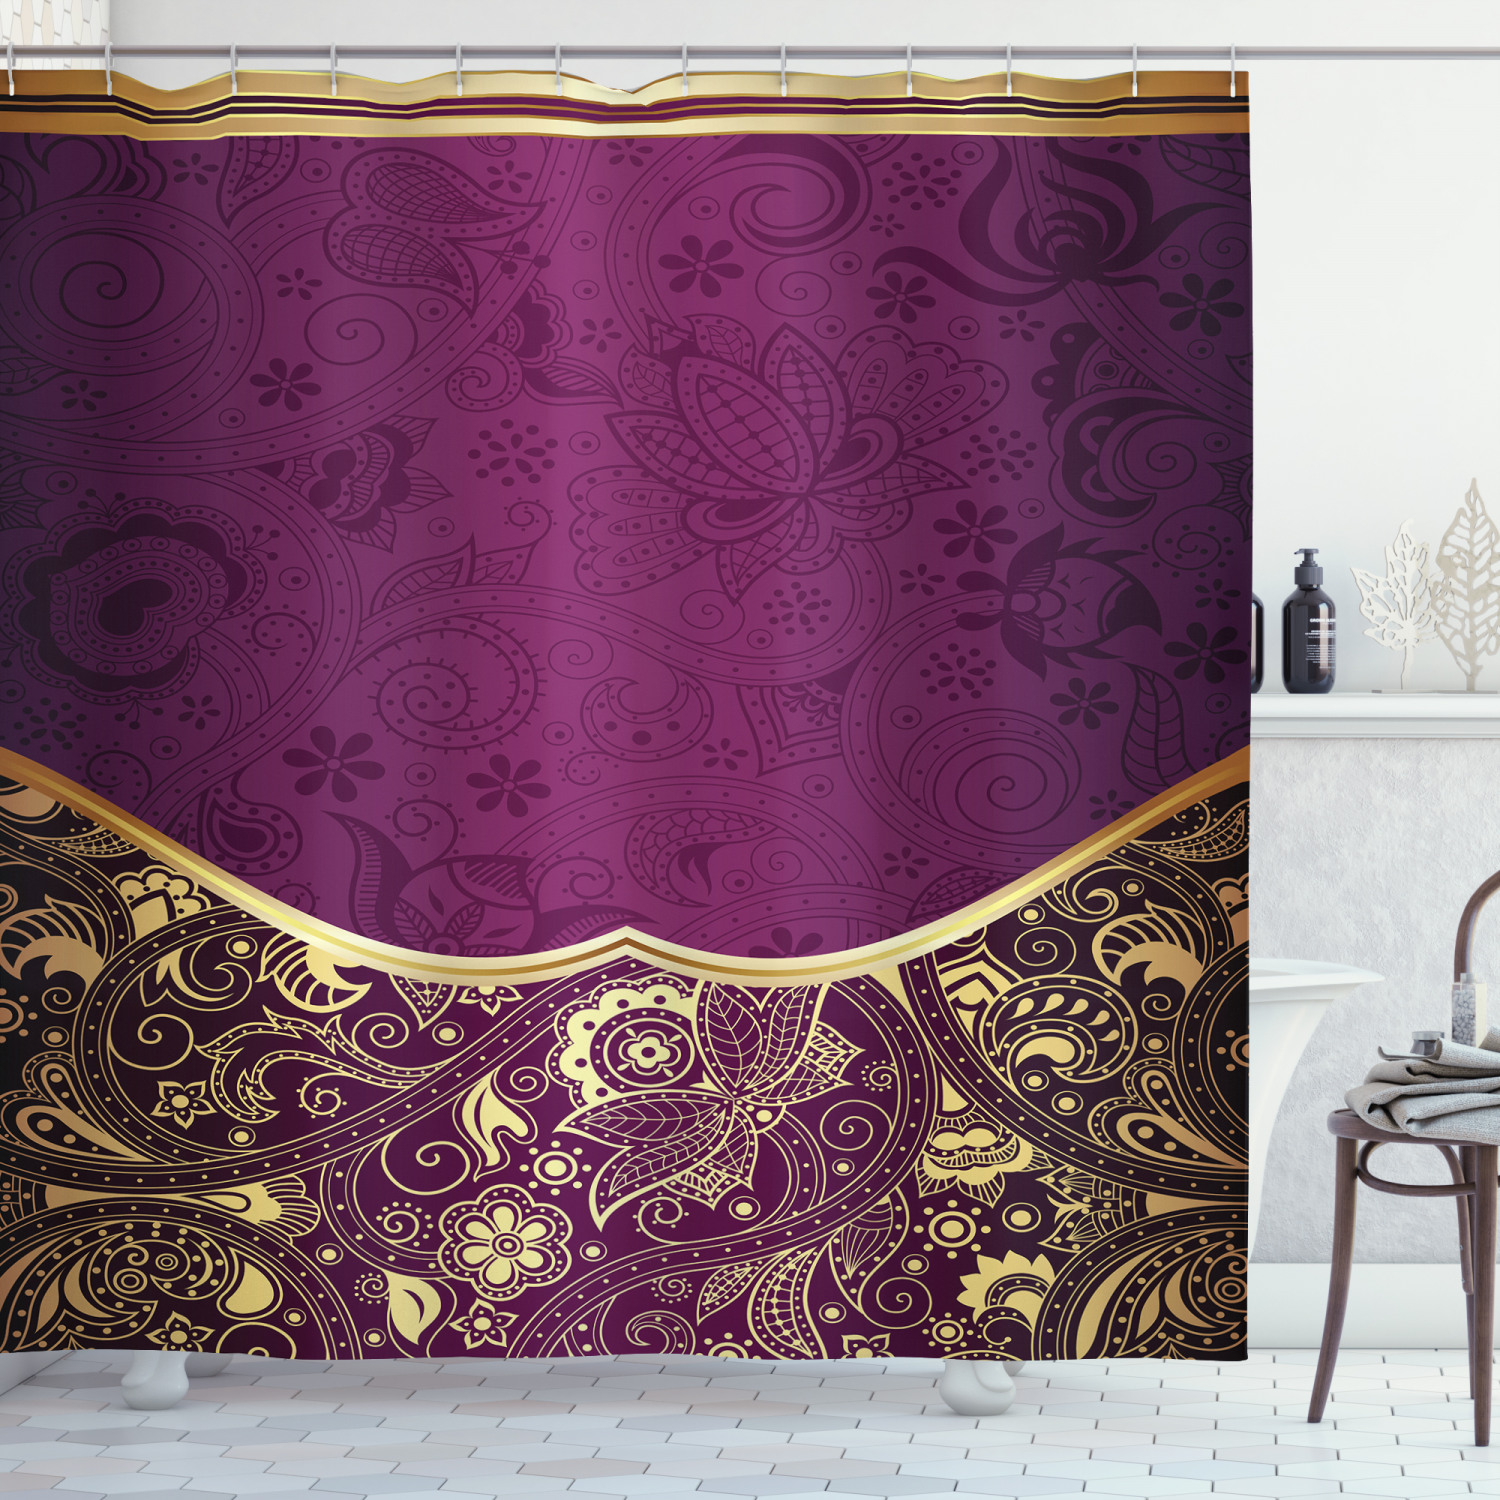 Waterproof Bath Decor Cloth Shower Curtain in 3 Sizes with Hooks Ambesonne